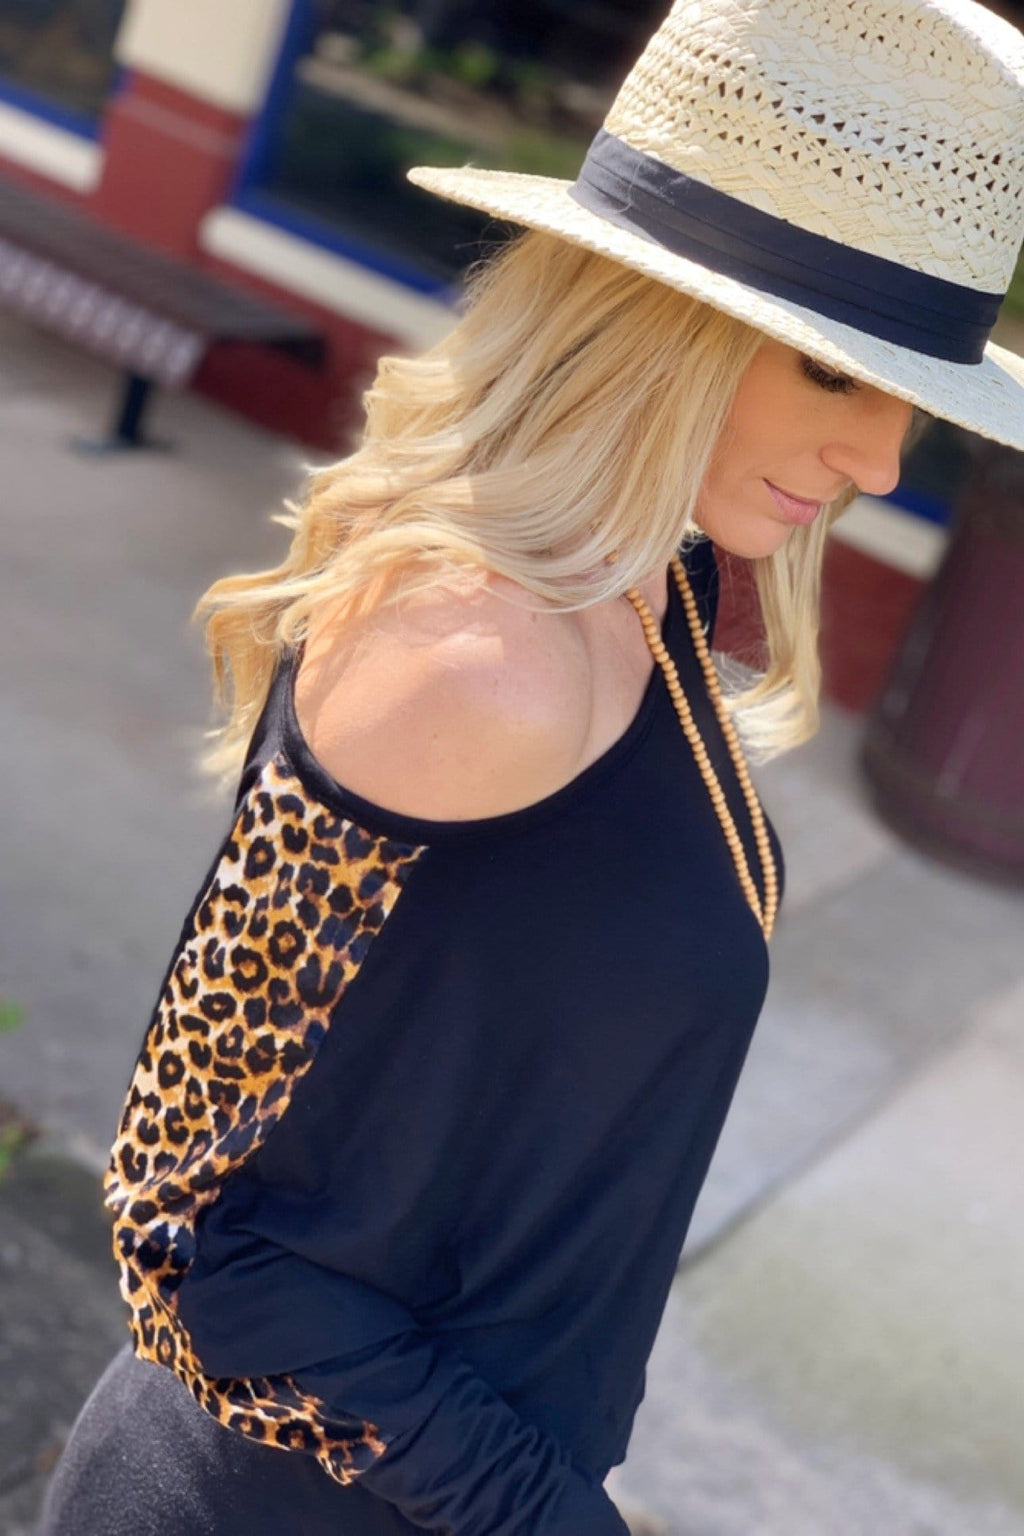 BABY IT'S A WILD WORLD LEOPARD PRINT TOP-BLACK - Infinity Raine